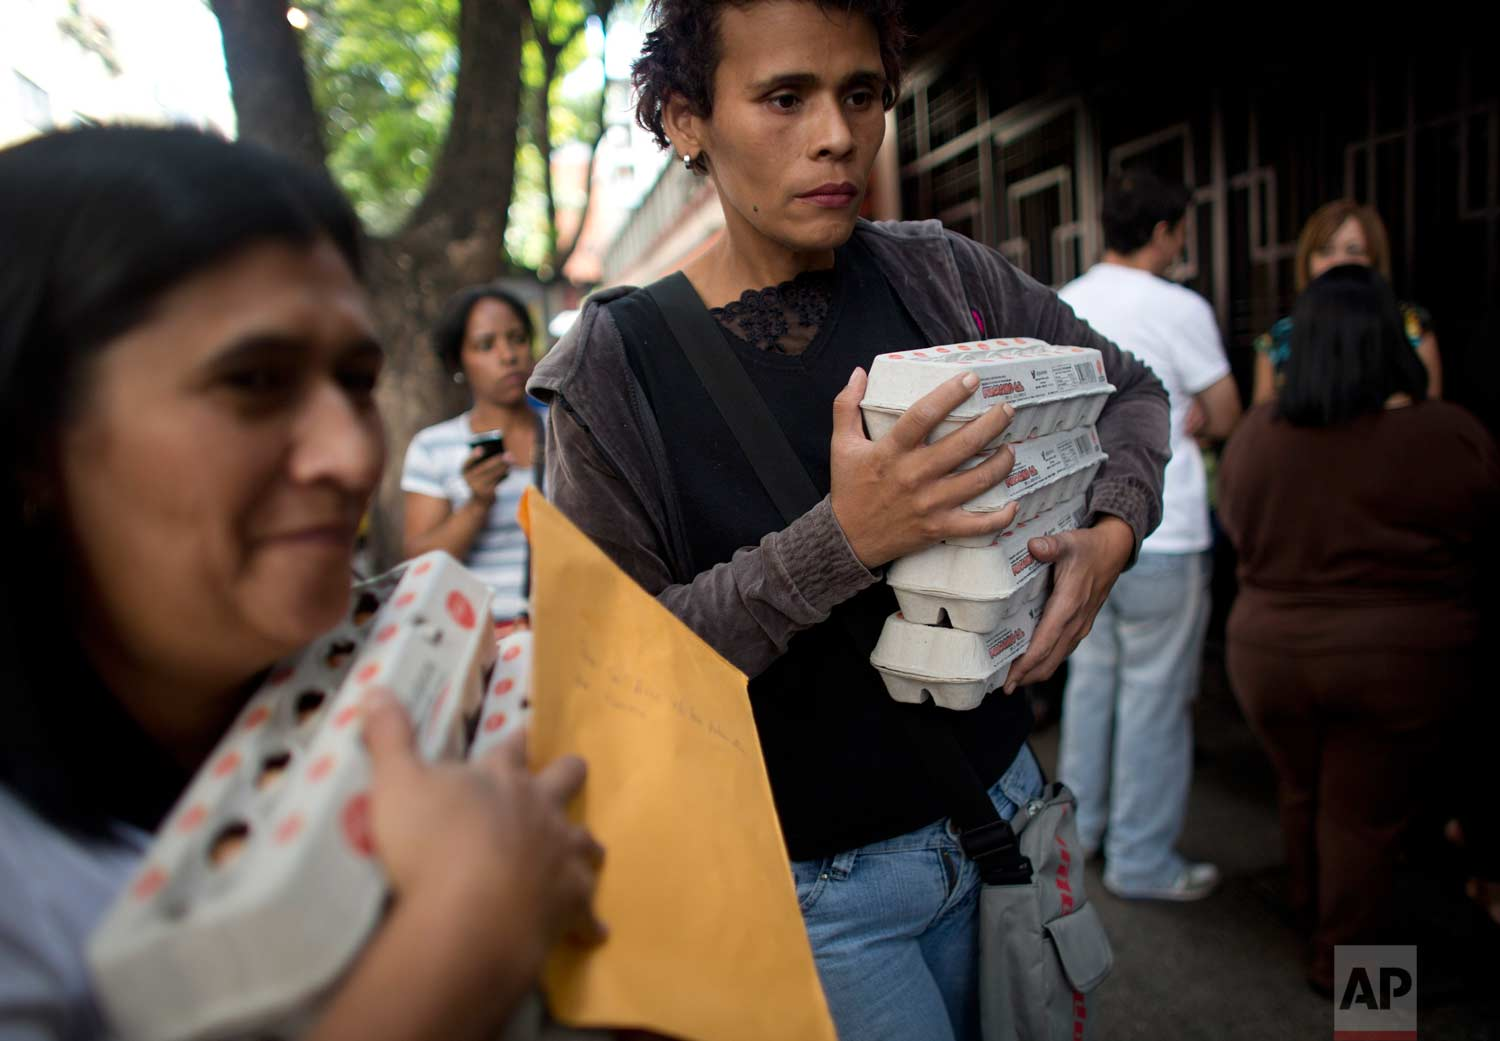 People carry boxes of eggs after buying them at government regulated prices in Caracas, Venezuela, during an egg shortage. (AP Photo/Ariana Cubillos)